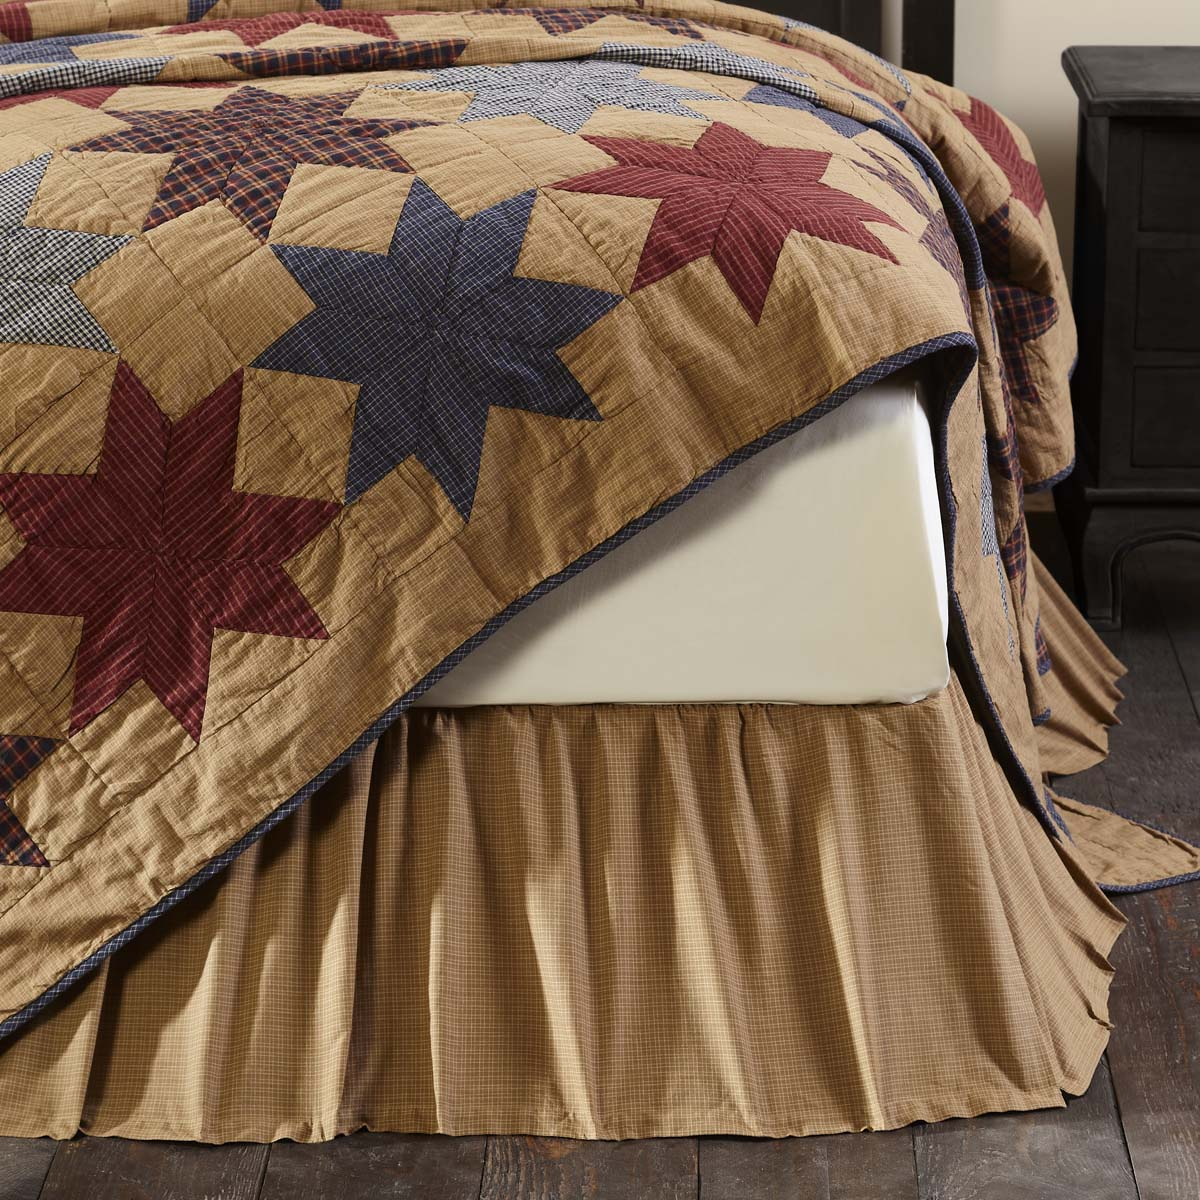 Kindred Star King Bed Skirt 78x80x16